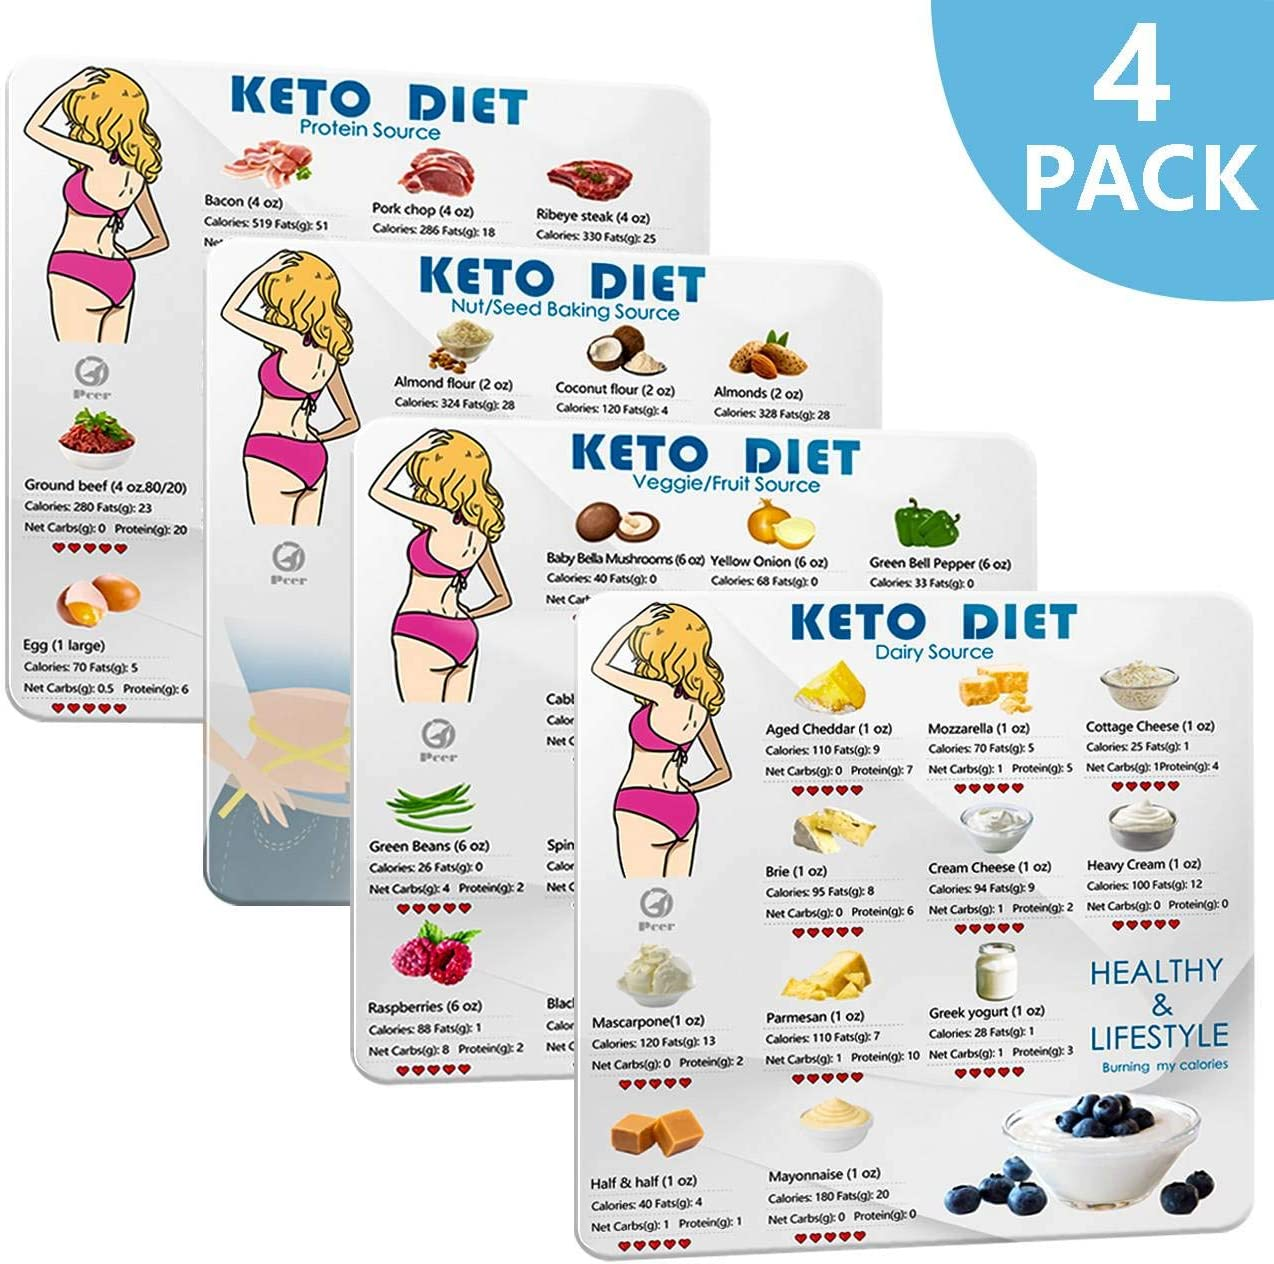 Keto Cheat Sheet, Keto Diet Magnetic for Ketogenic Diet Foods, Keto food products Quick Guide Fridge Magnet Reference Charts